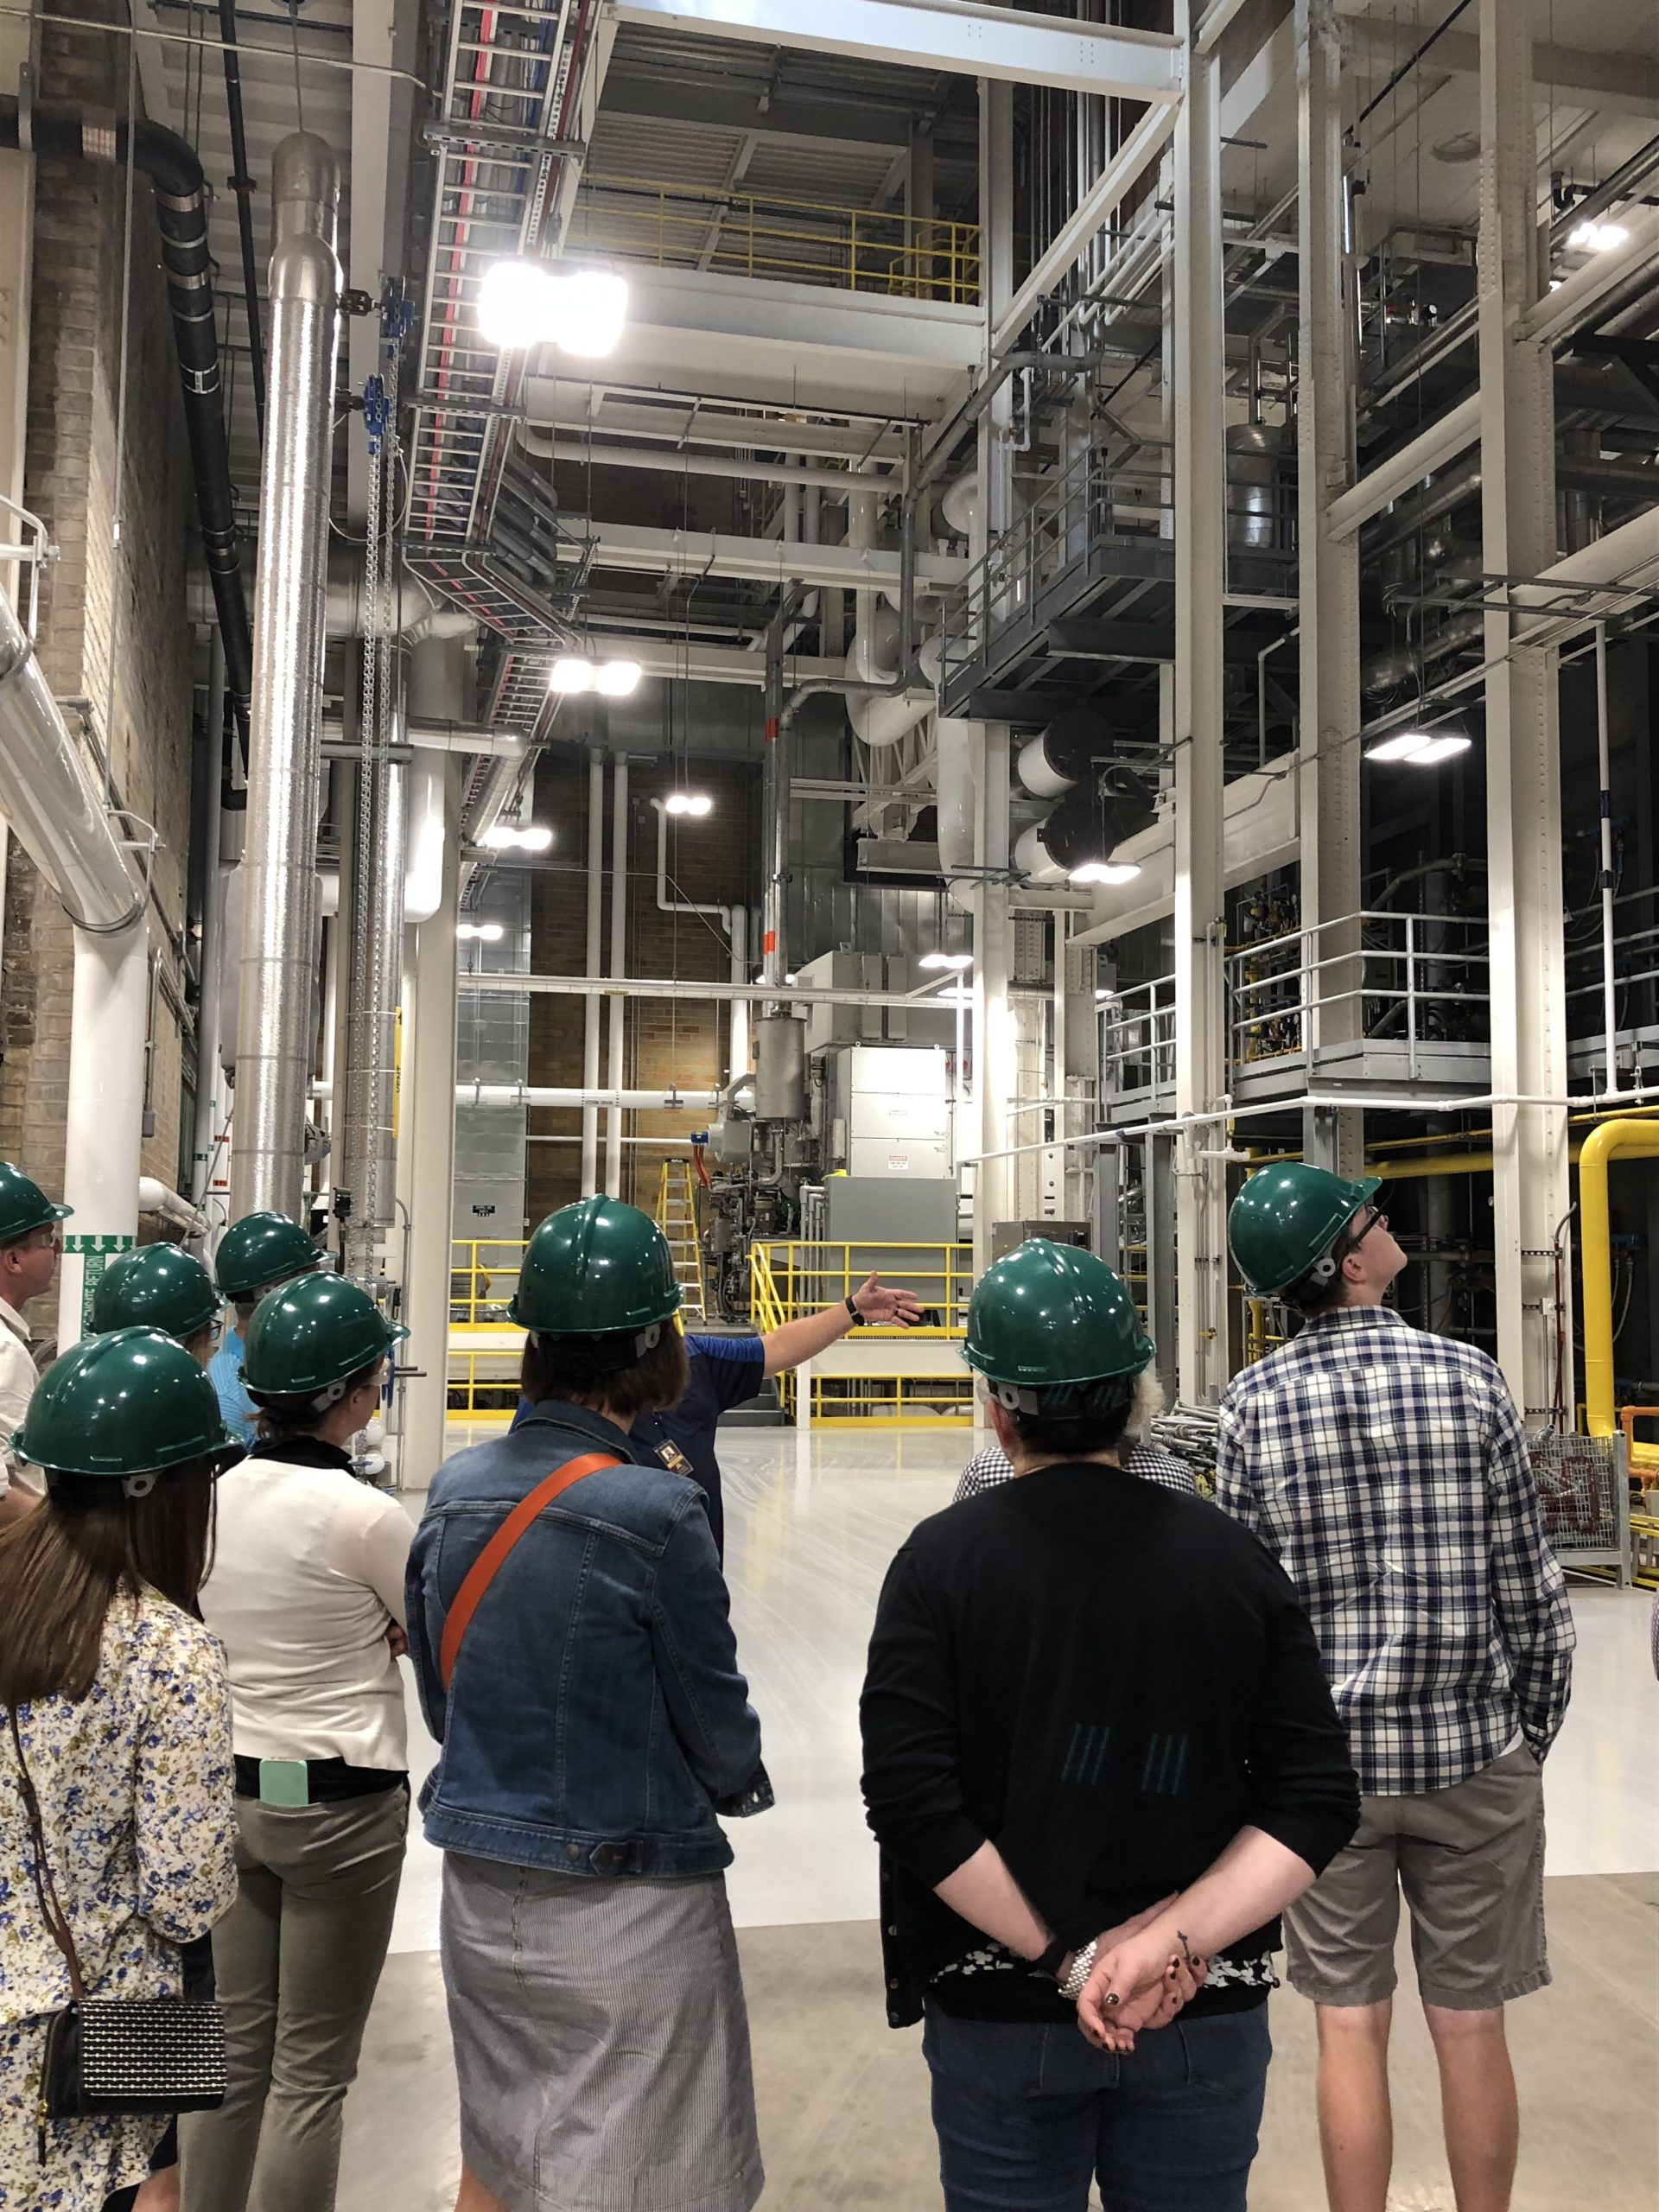 UofM-Heating-Plant-Tour-1-scaled.jpg